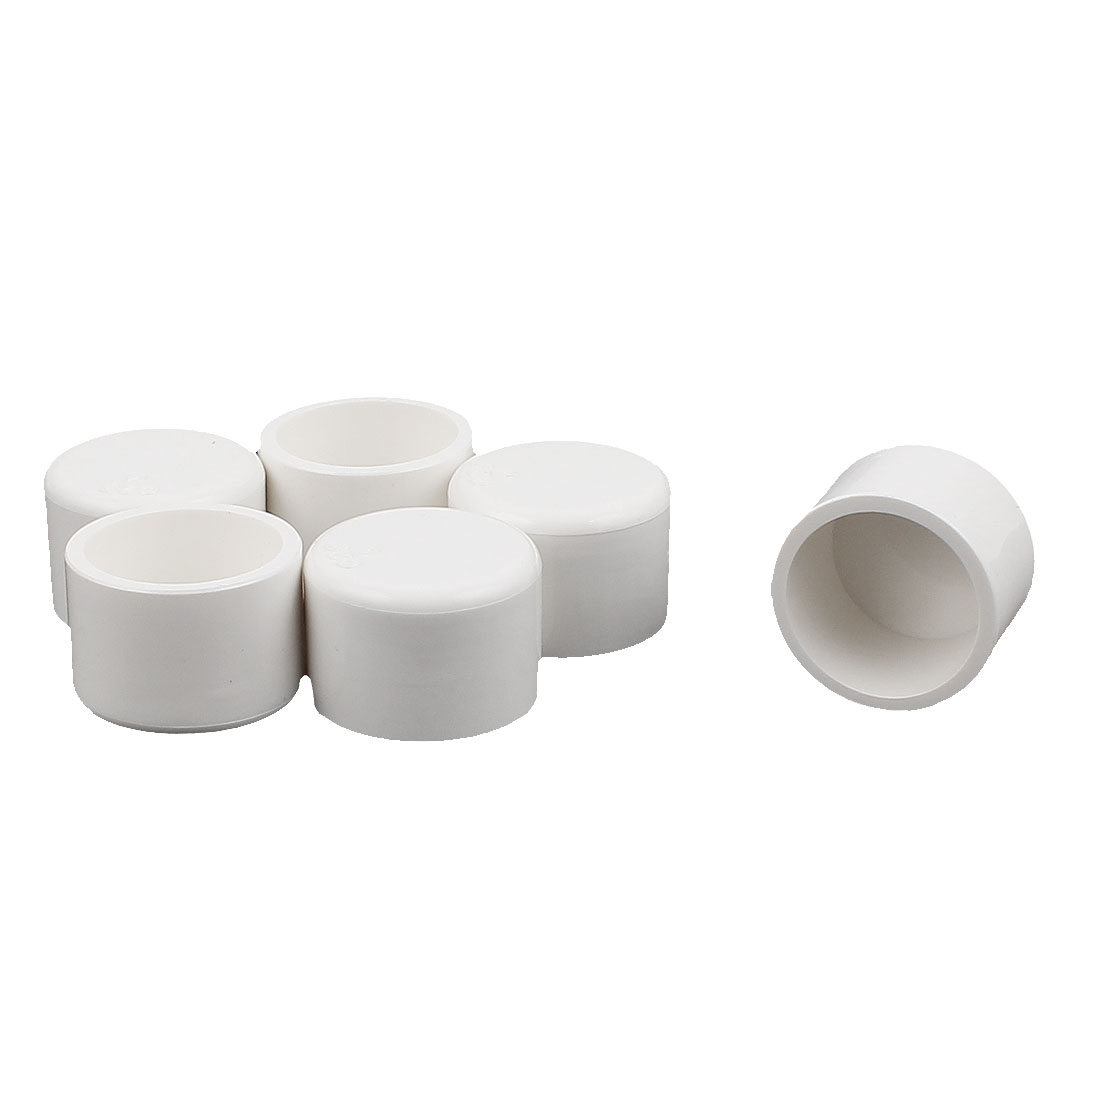 6Pcs Round Water Tubing Tube Pipe Fitting End Cap Cover White 25mm Inner Dia